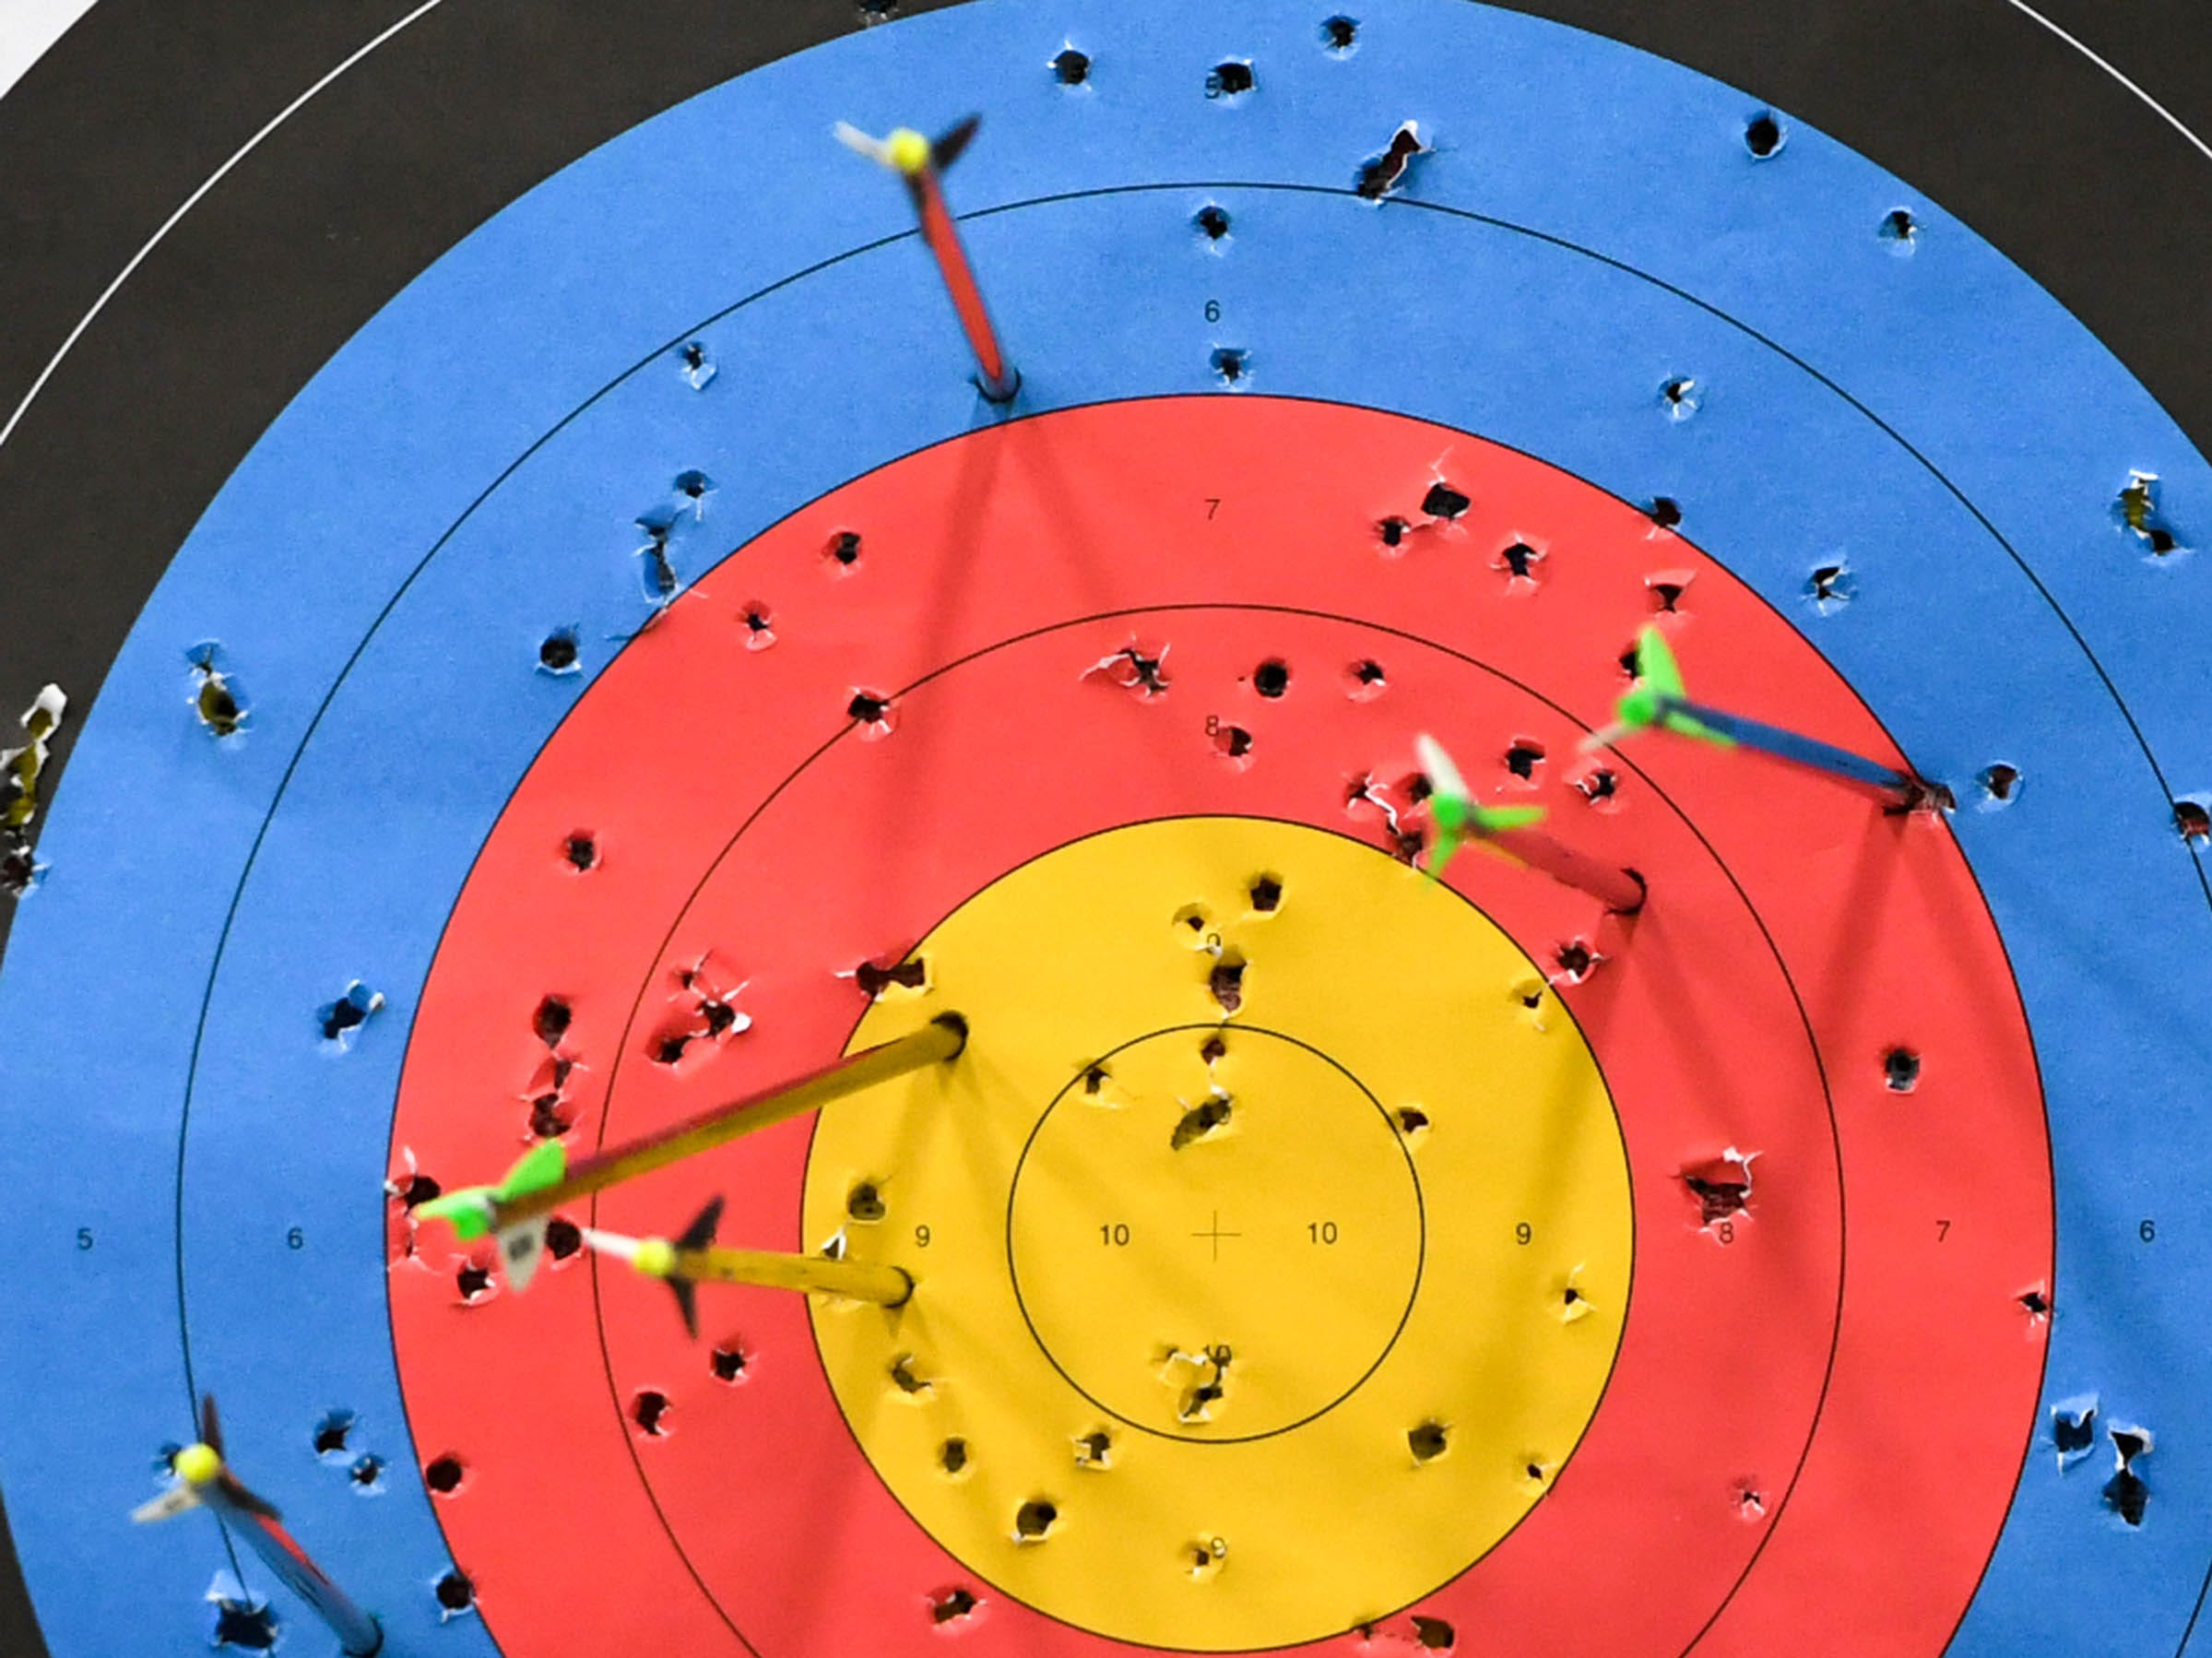 during the South Carolina Department of Natural Resources regional National Archery in the Schools Program (NASP) regional competition at the Anderson Civic Center Wednesday.  The program, which awards $50,000 in scholarships to high school seniors, is a joint venture between state departments of Education and Wildlife. The competition in Anderson, leading up to the state finals March 26-28 in Sumter, had 950 children from 14 elementary and 23 high schools around the state.